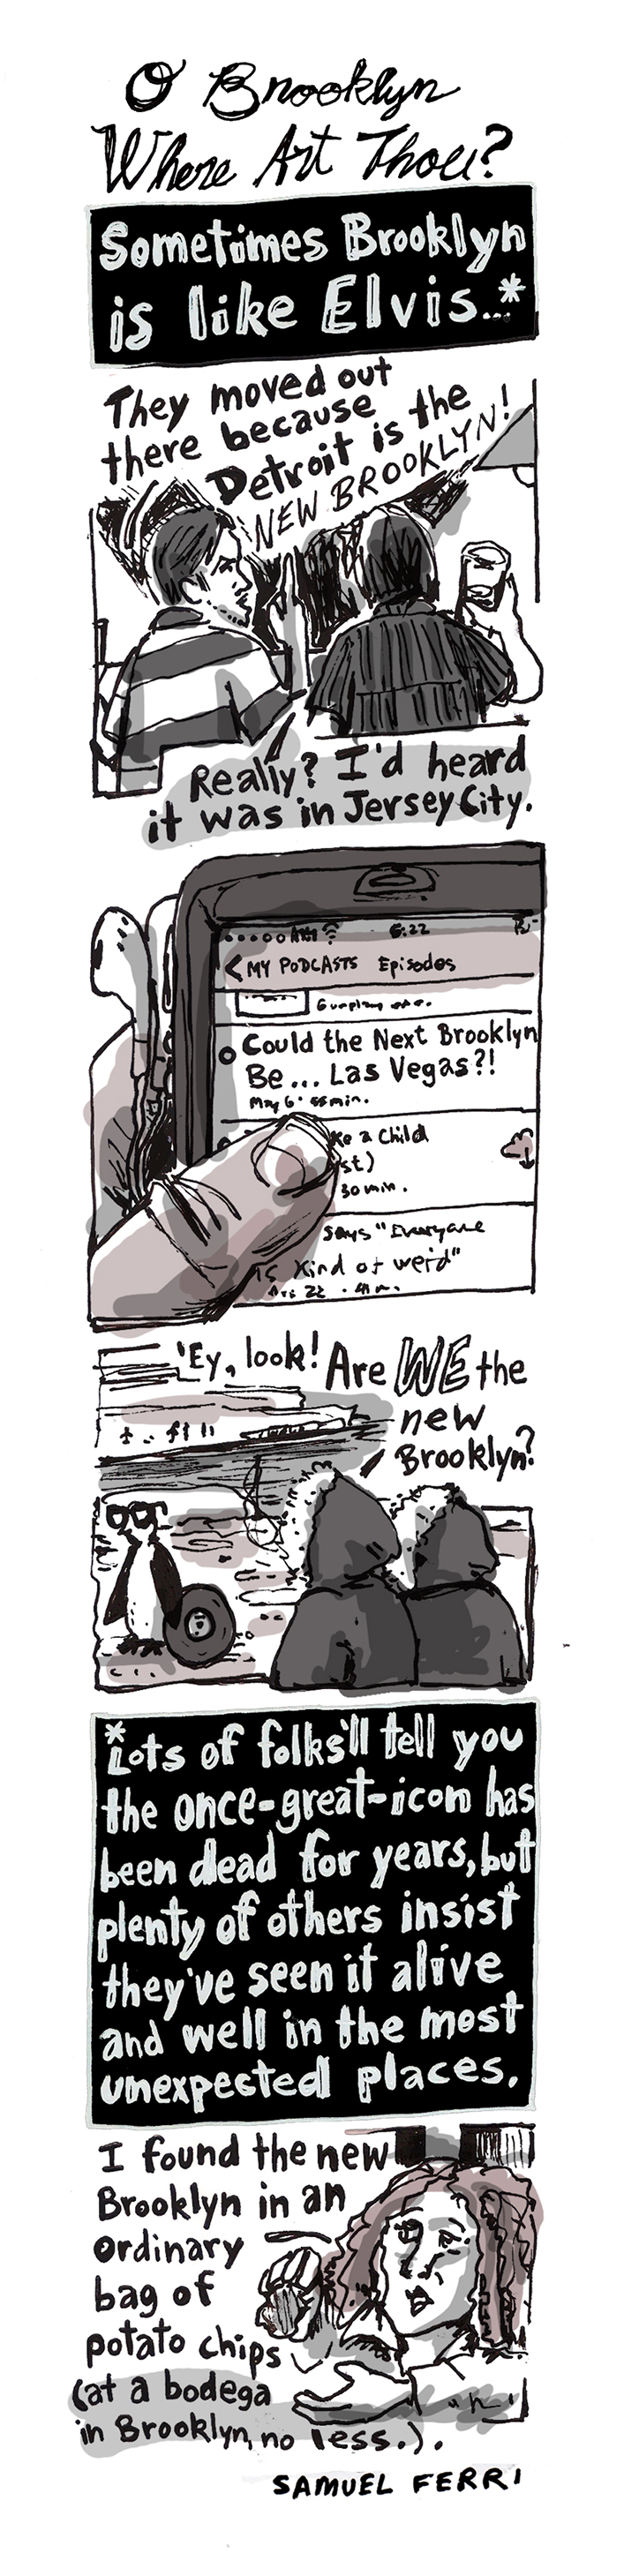 O Brooklyn Where Art Thou: A Cartoon by Samuel Ferri